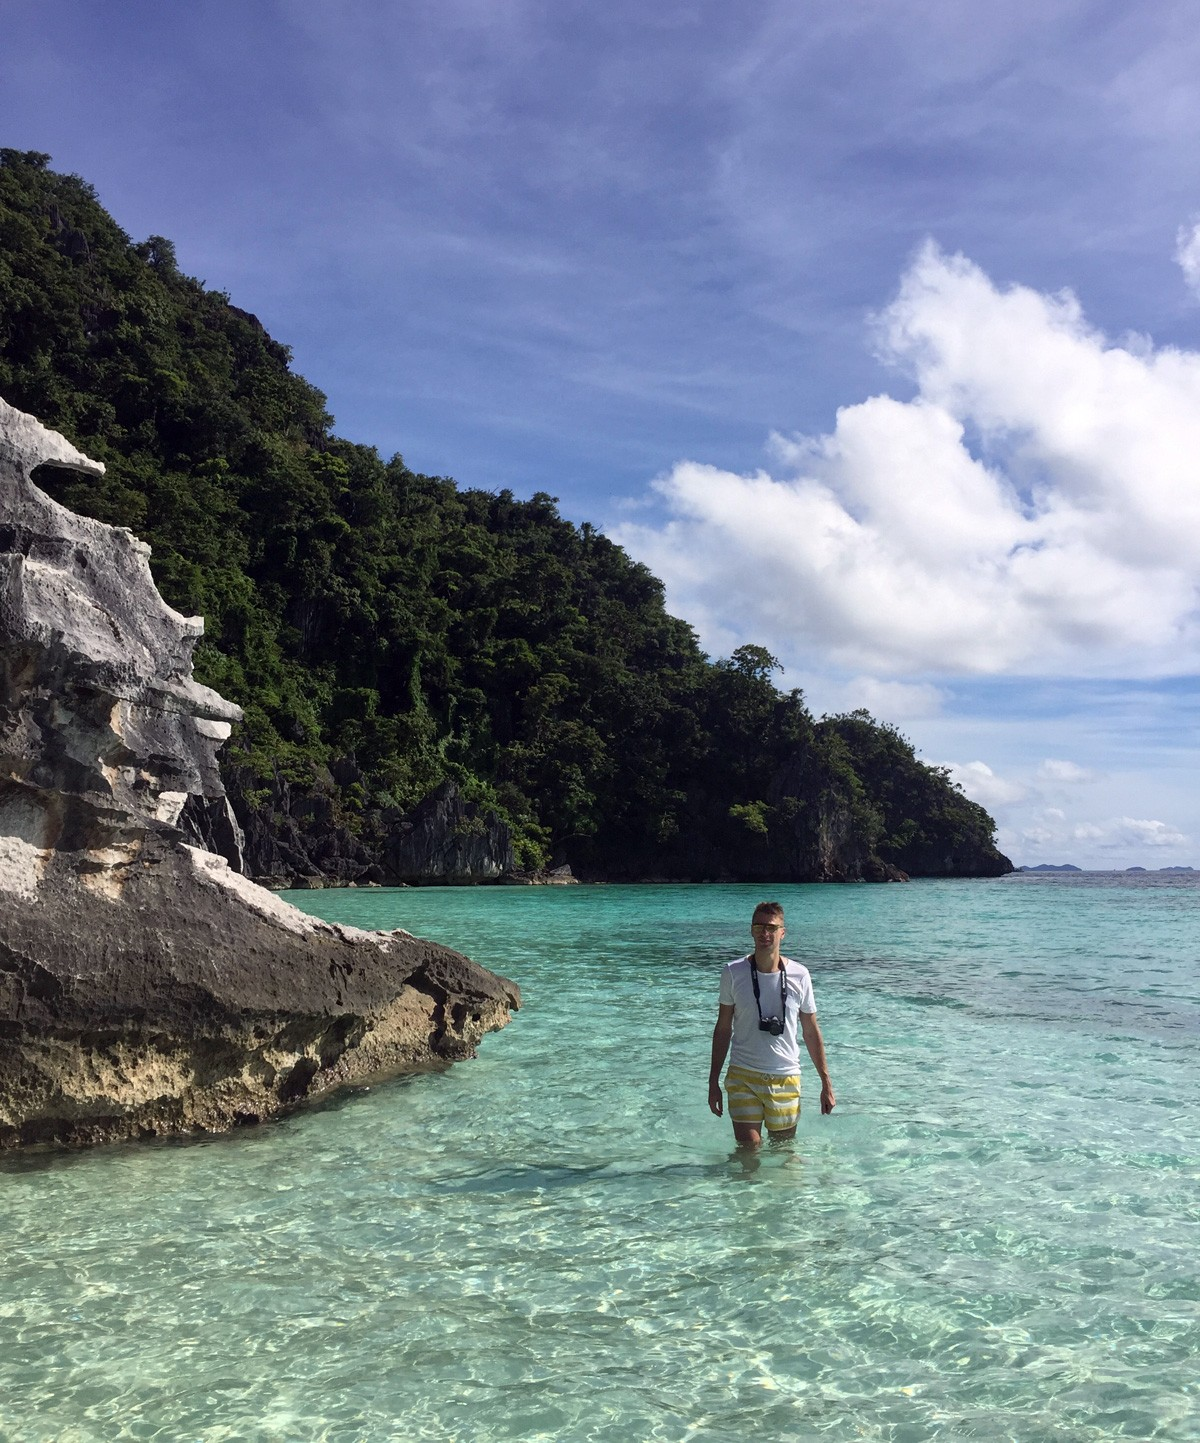 Andrei on banul beach, Palawan - Travelblogstories